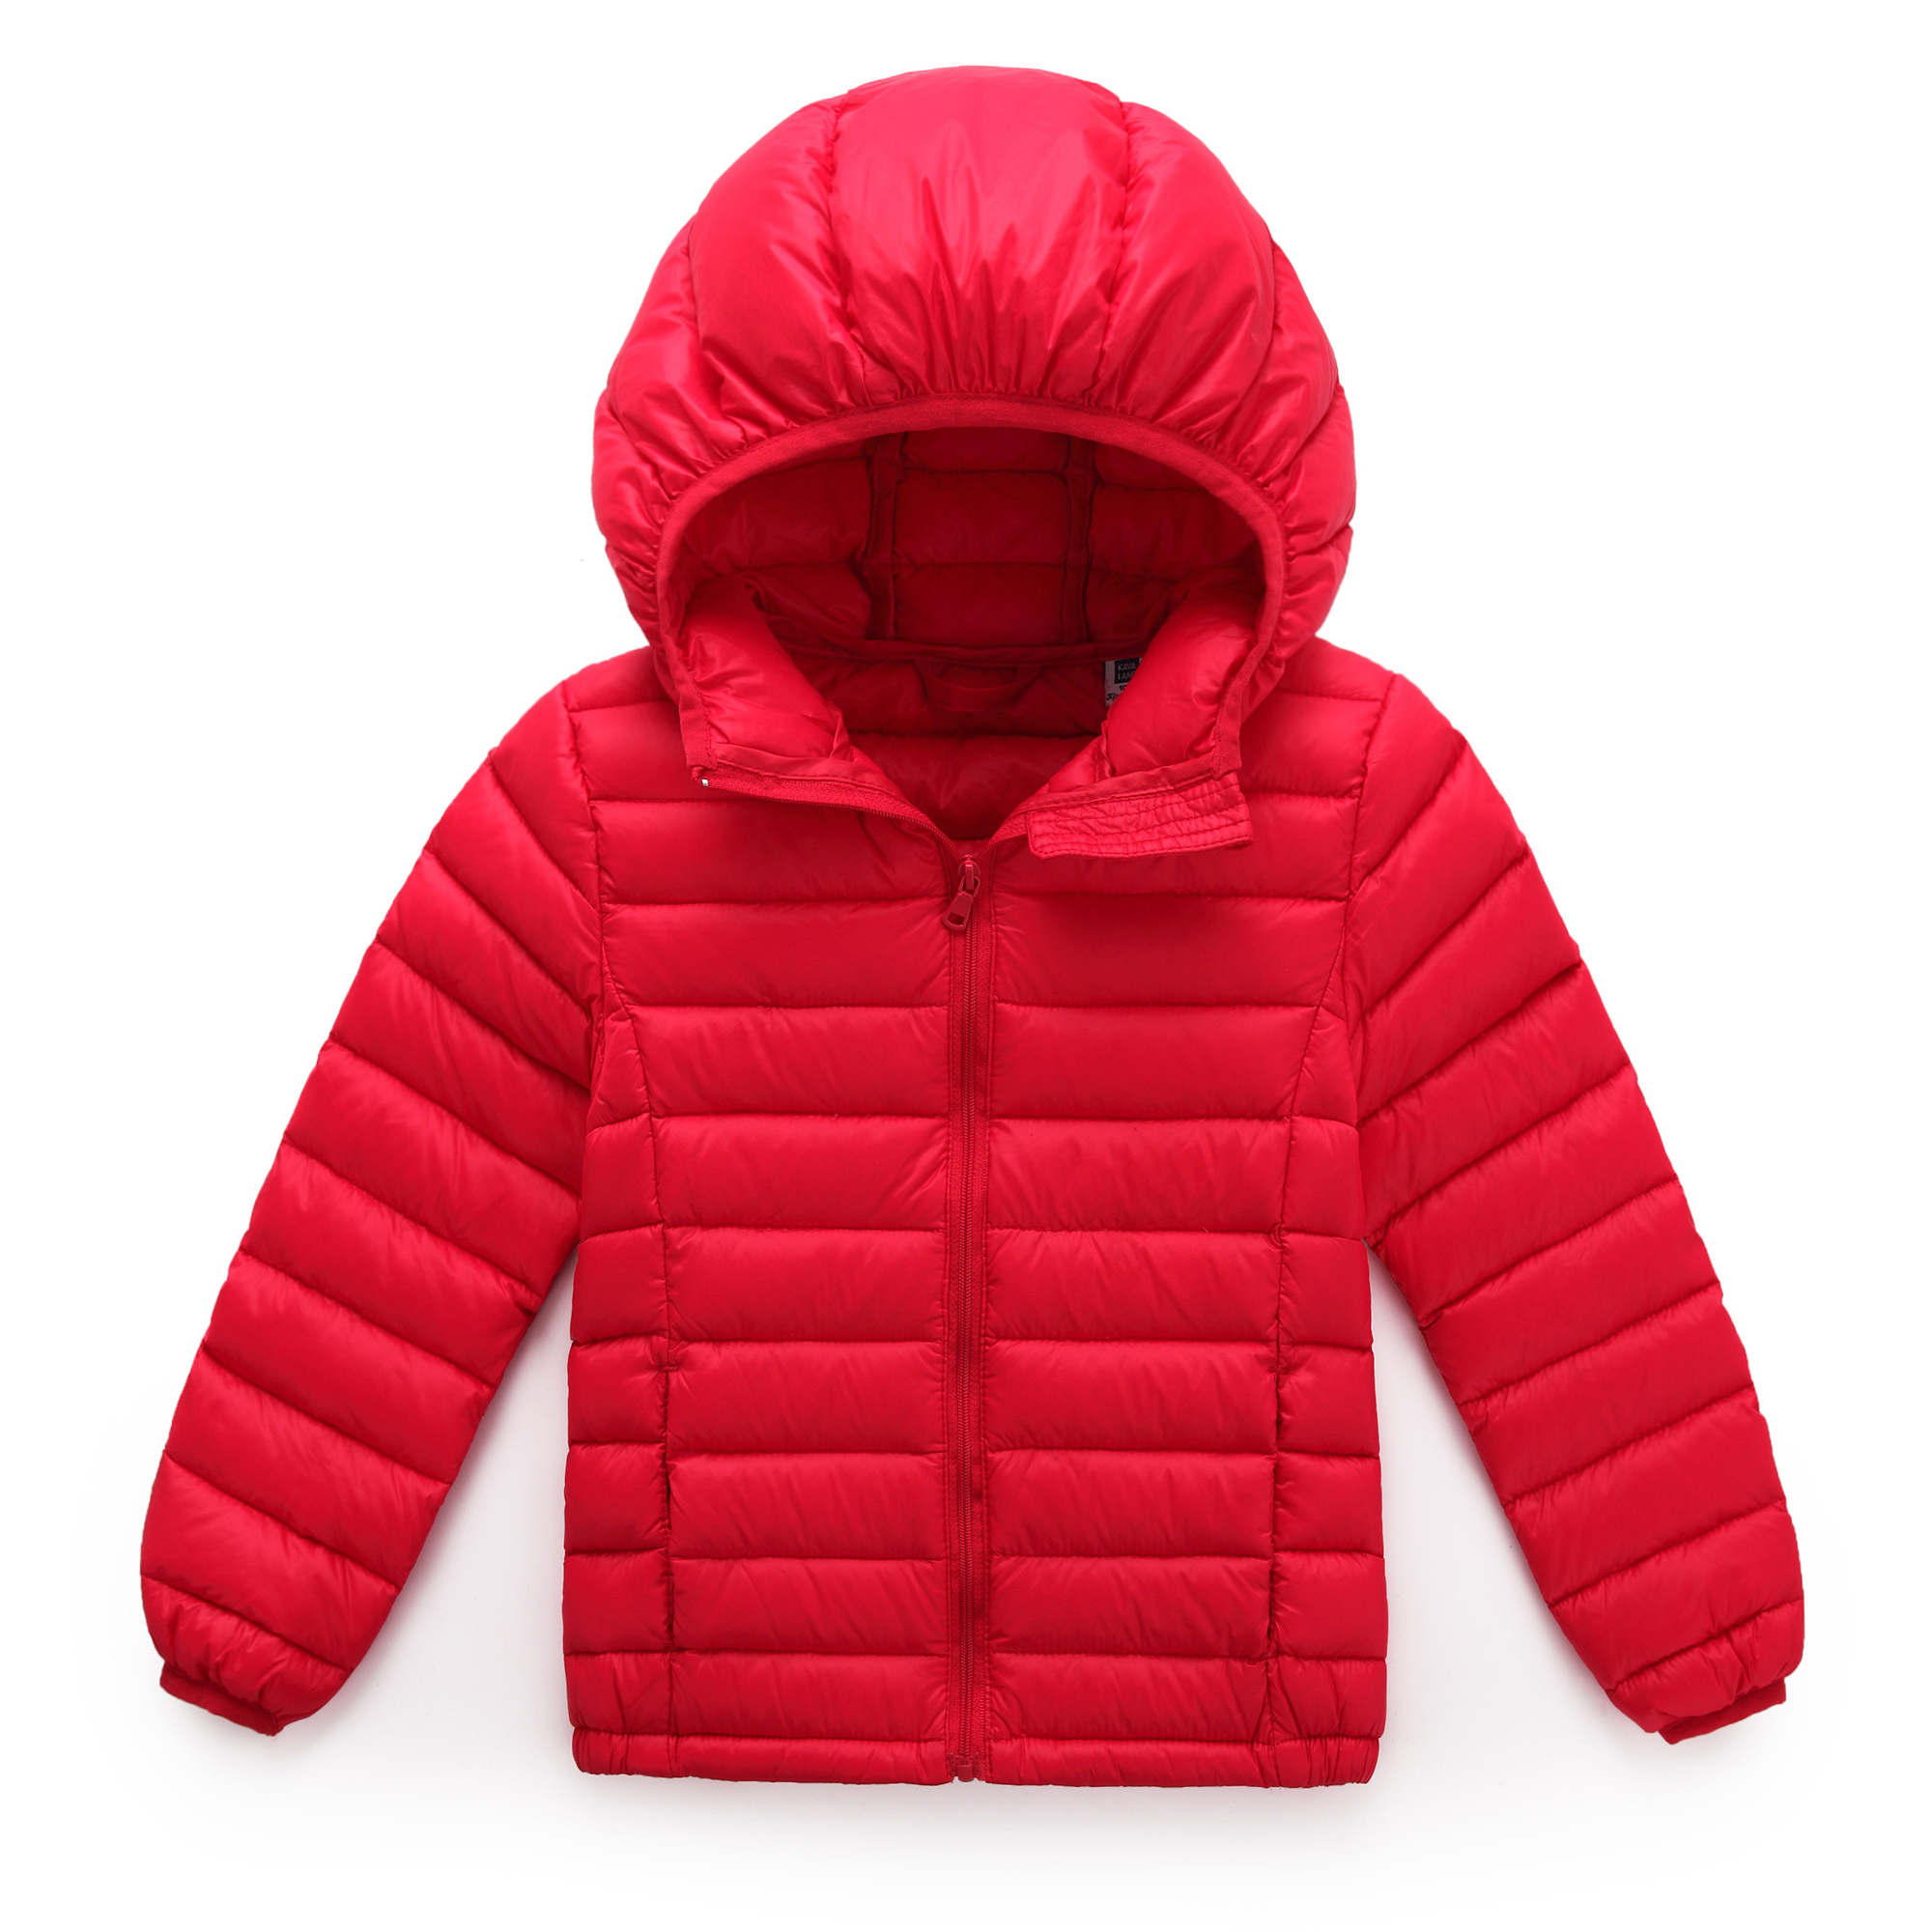 Boys outerwear Ultra light 96% white duck down coat Kids Parka girls clothes Casacos de inverno feminino Jaquetas Warm clothes